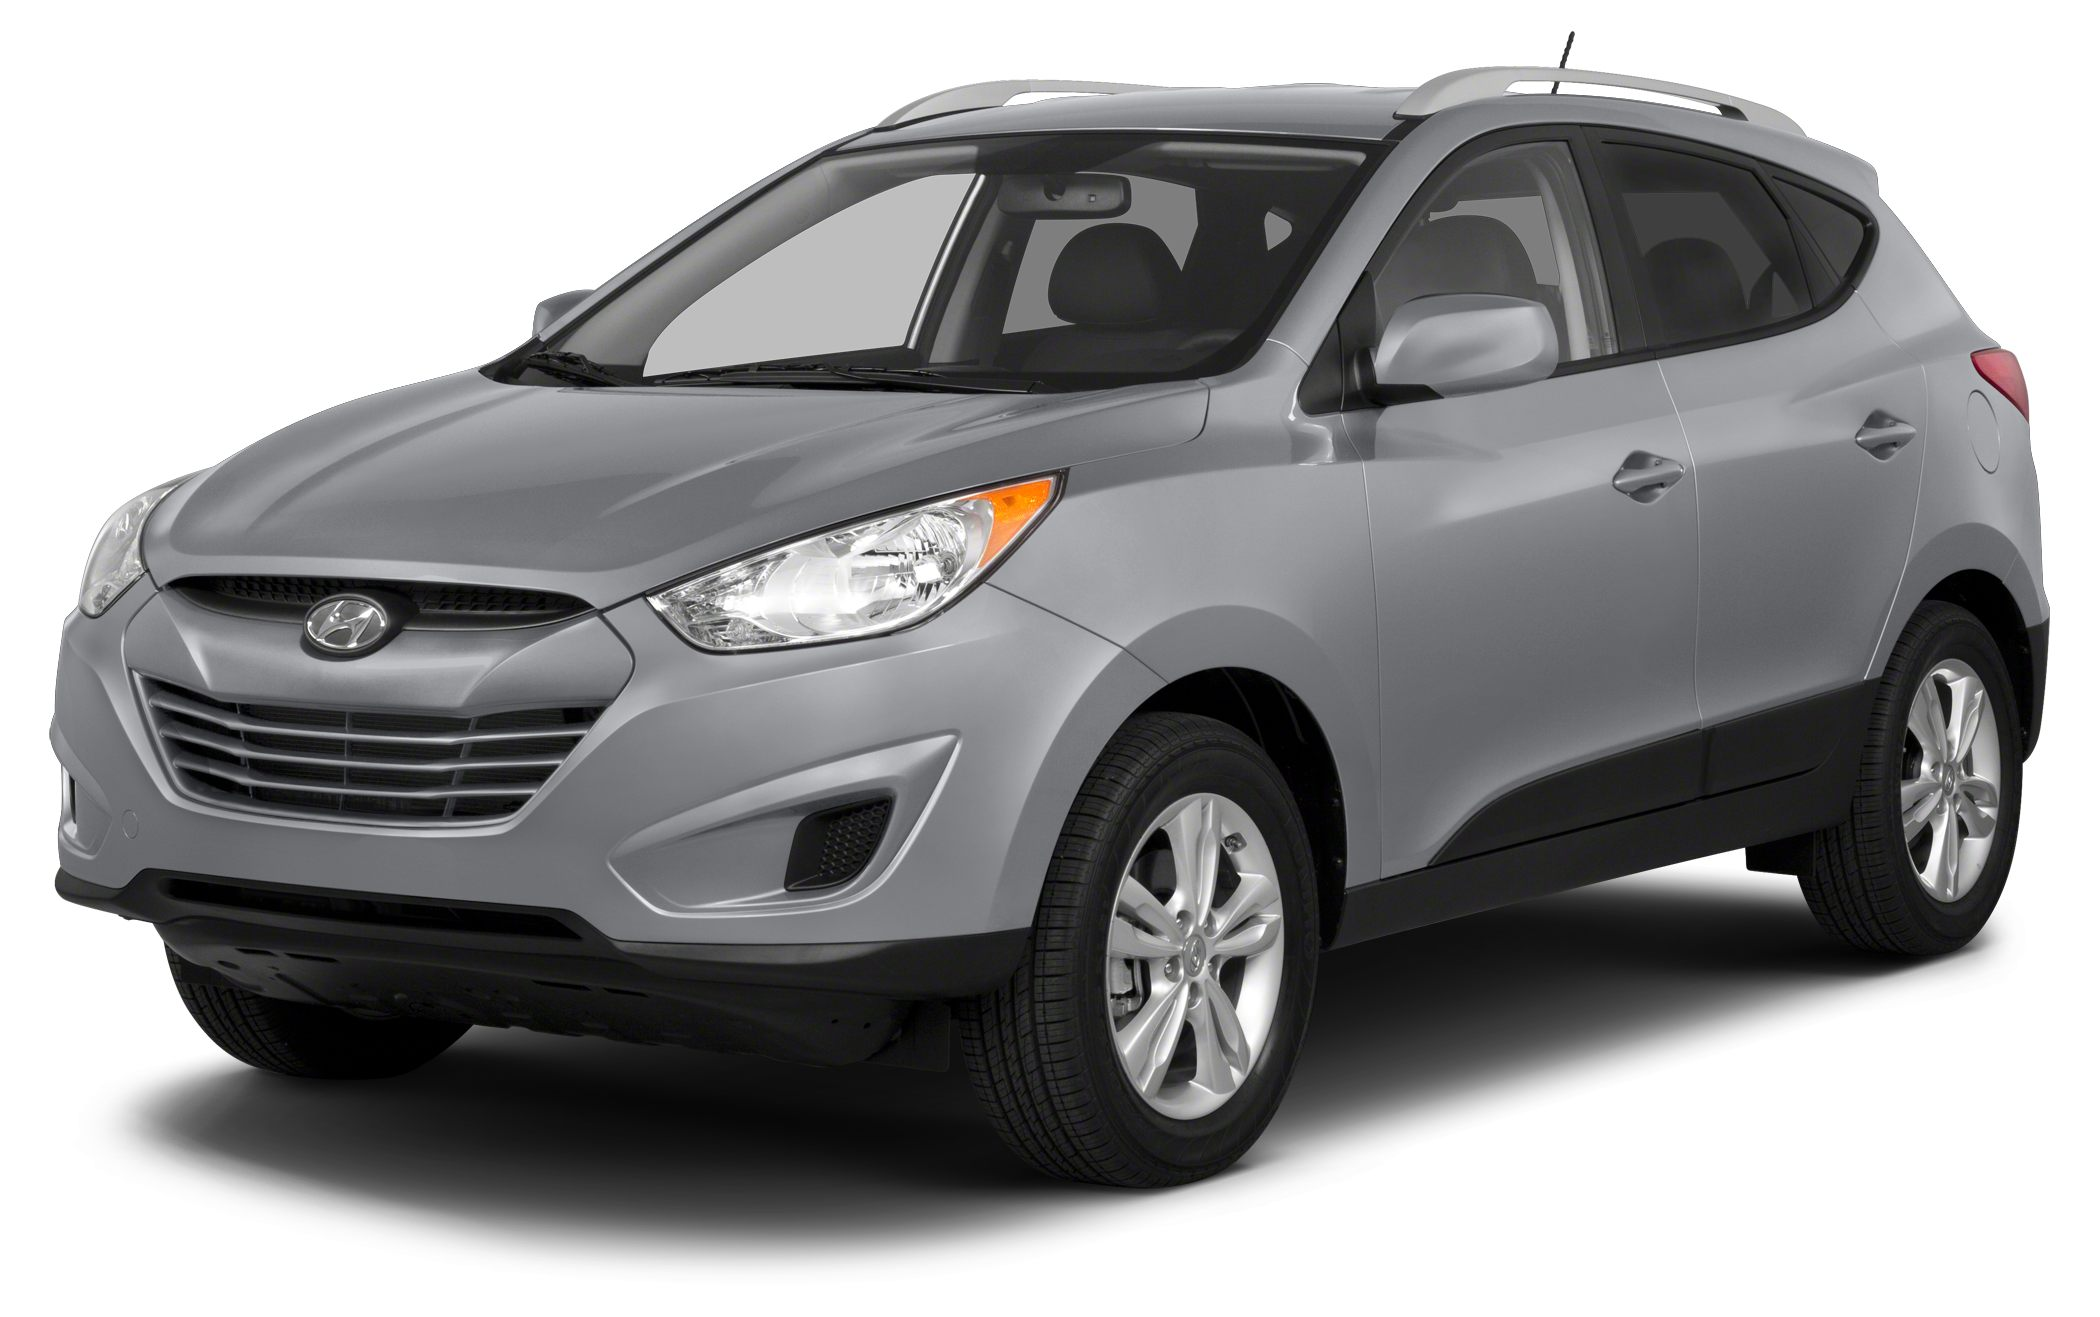 2013 Hyundai Tucson GLS FREE FIRST YEAR MAINTENANCE ONE OWNER LOCAL TRADE and NO ACCIDENT